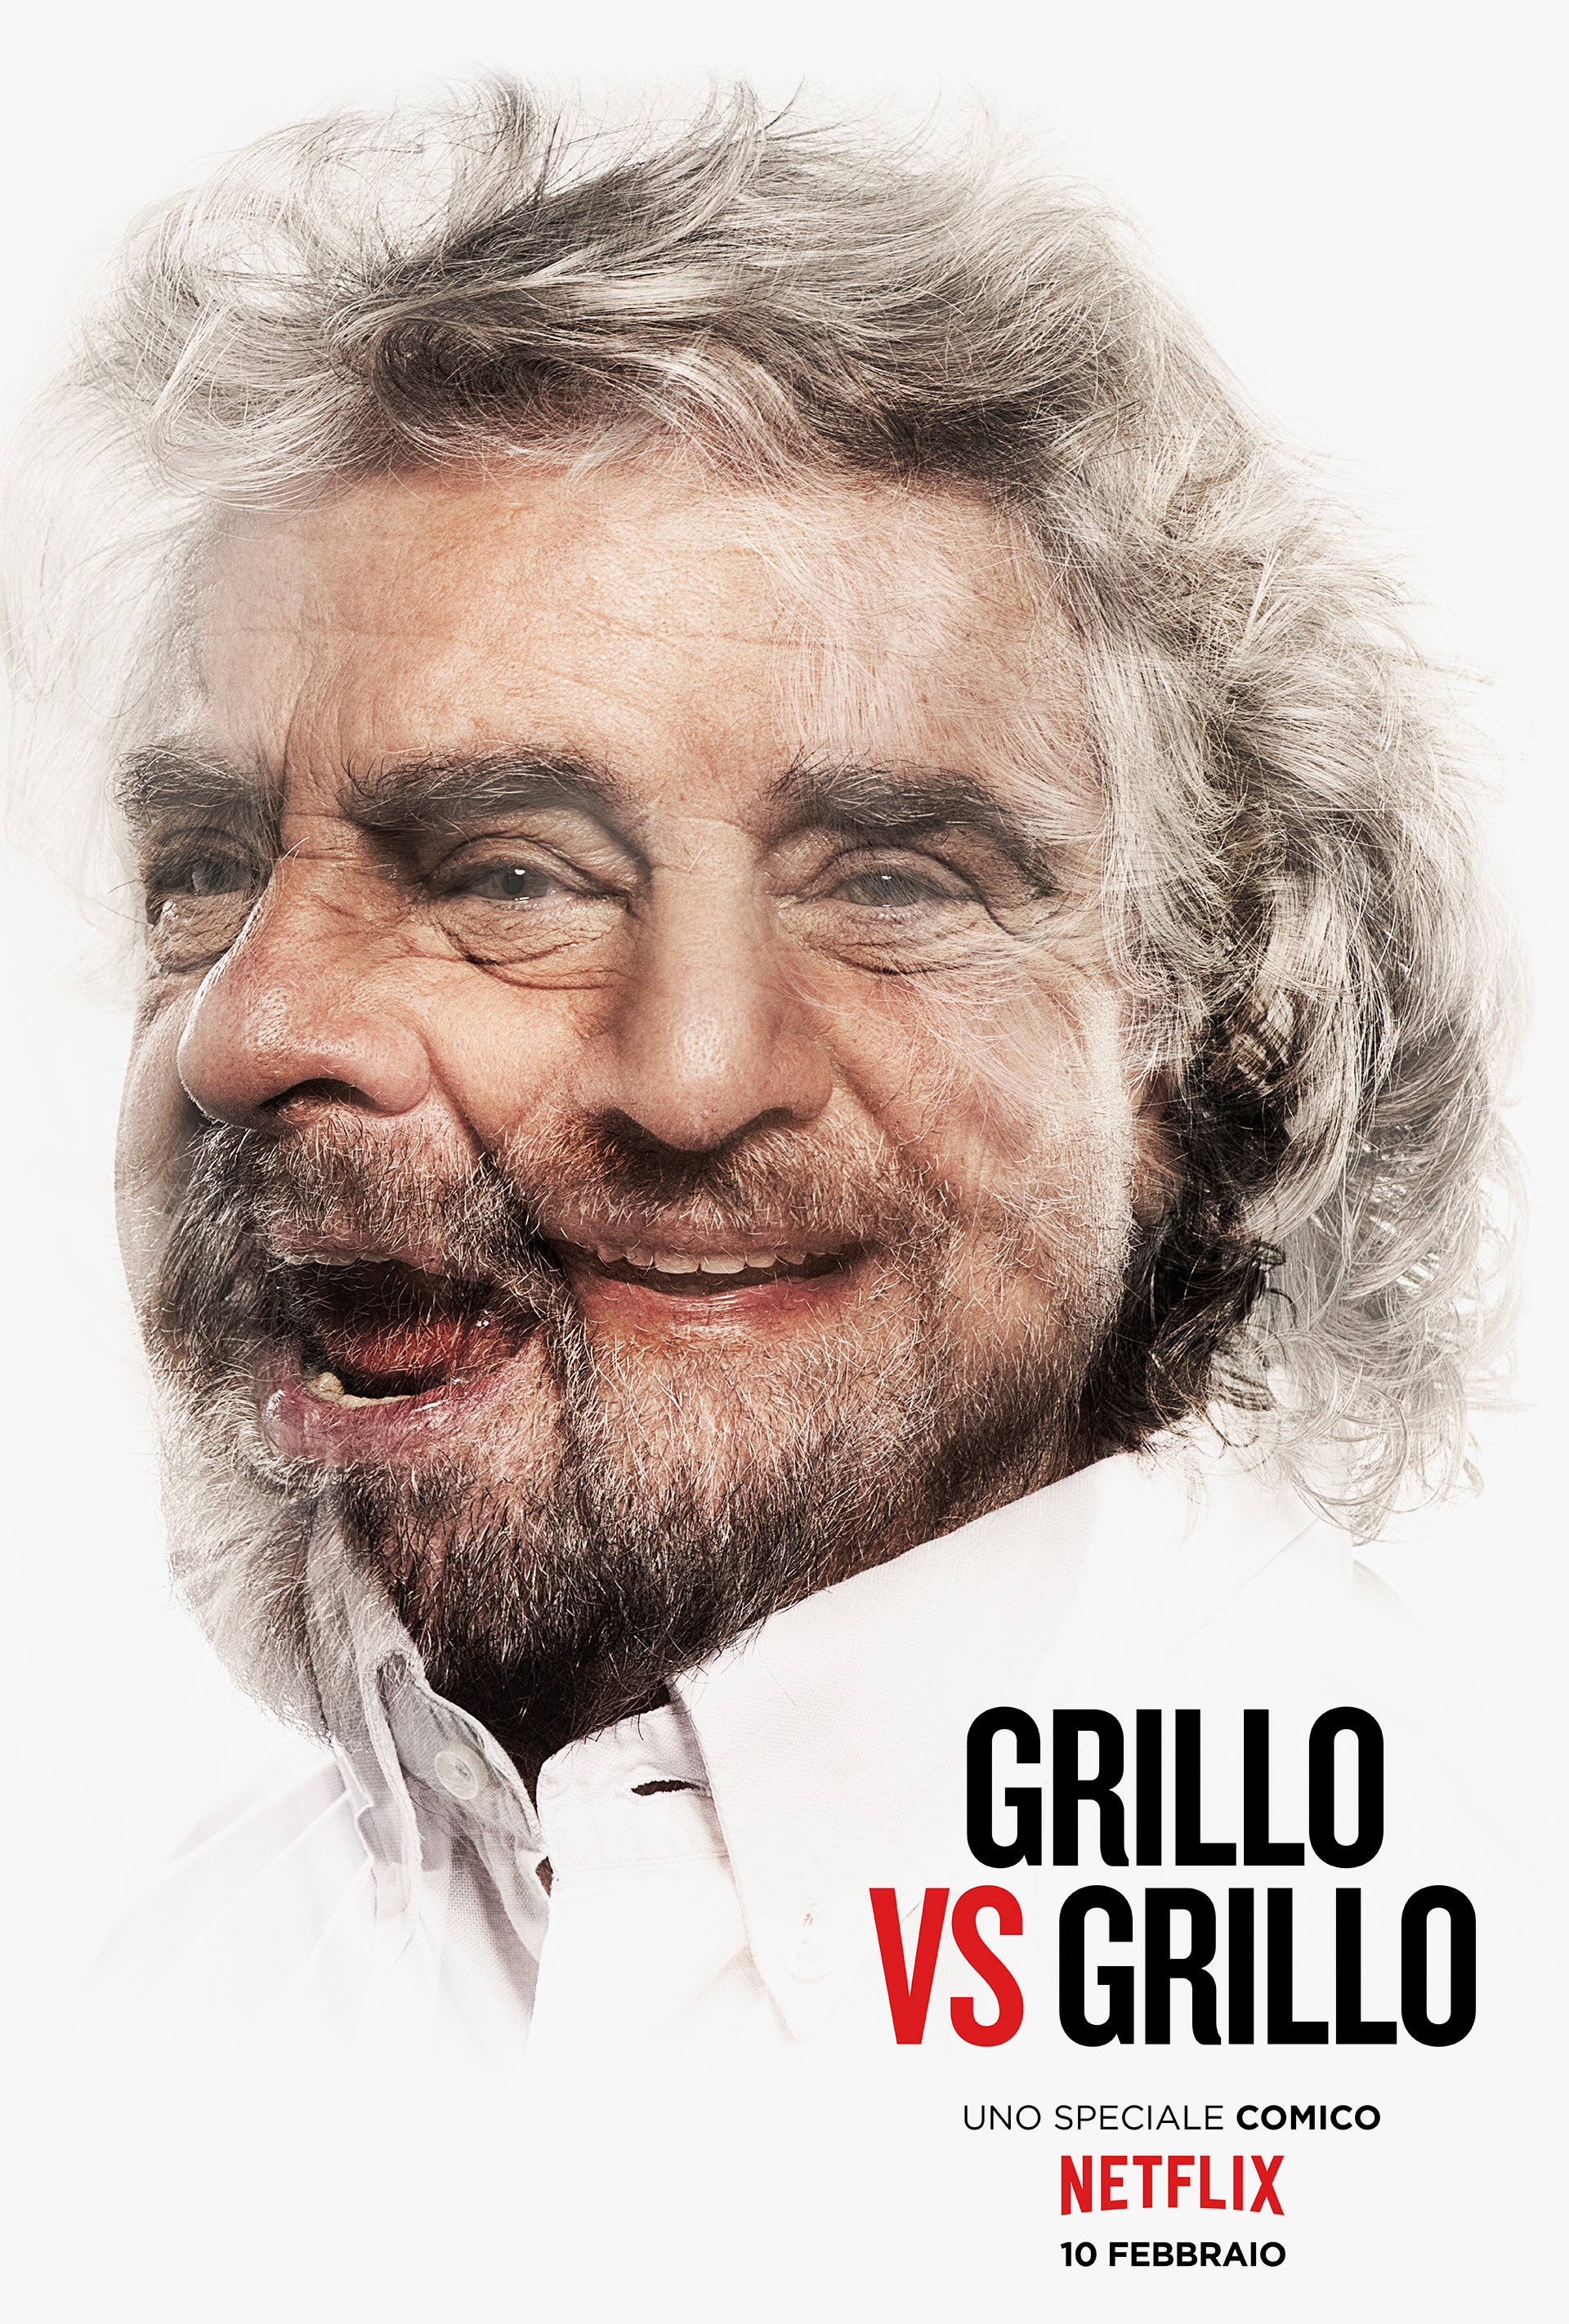 grillo essay Grillo barristers is a prominent toronto plaintiff personal injury law firm with over 30 years of experience we are prosecuting claims for injured victims throughout ontario including toronto.